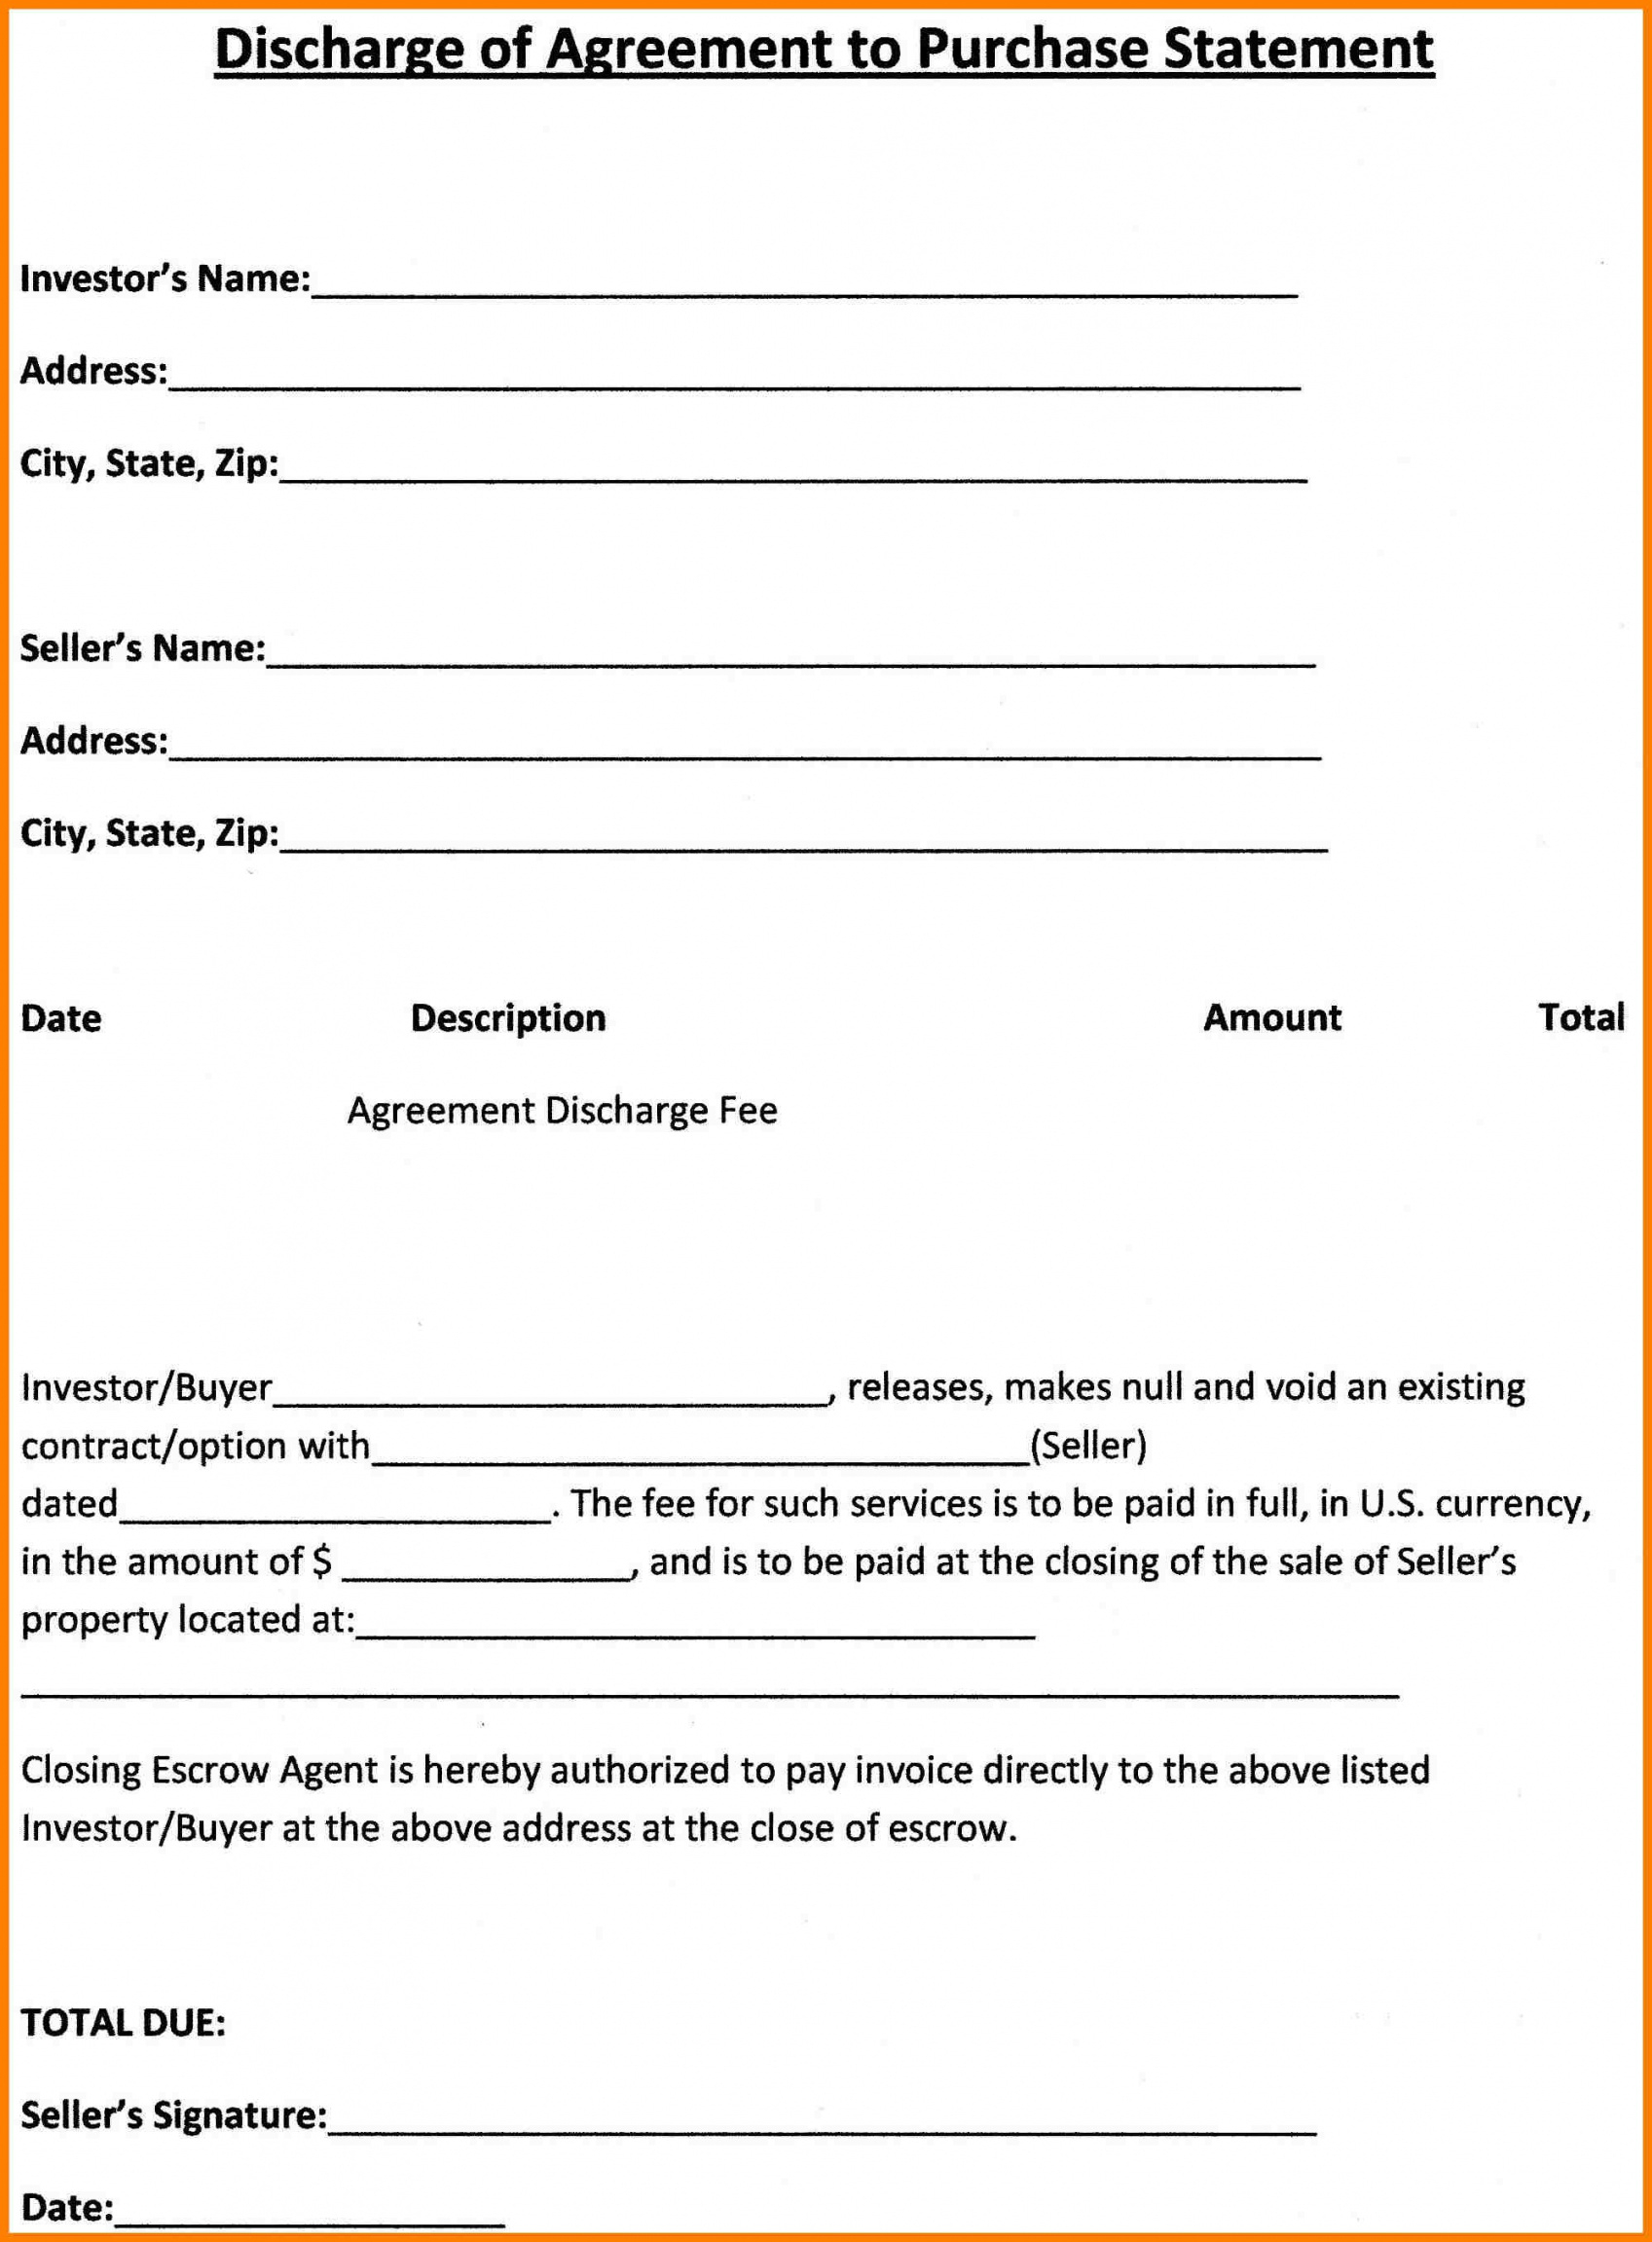 003 Free Purchase Agreement Template Sample Investor Resume Simple - Free Printable Real Estate Purchase Agreement